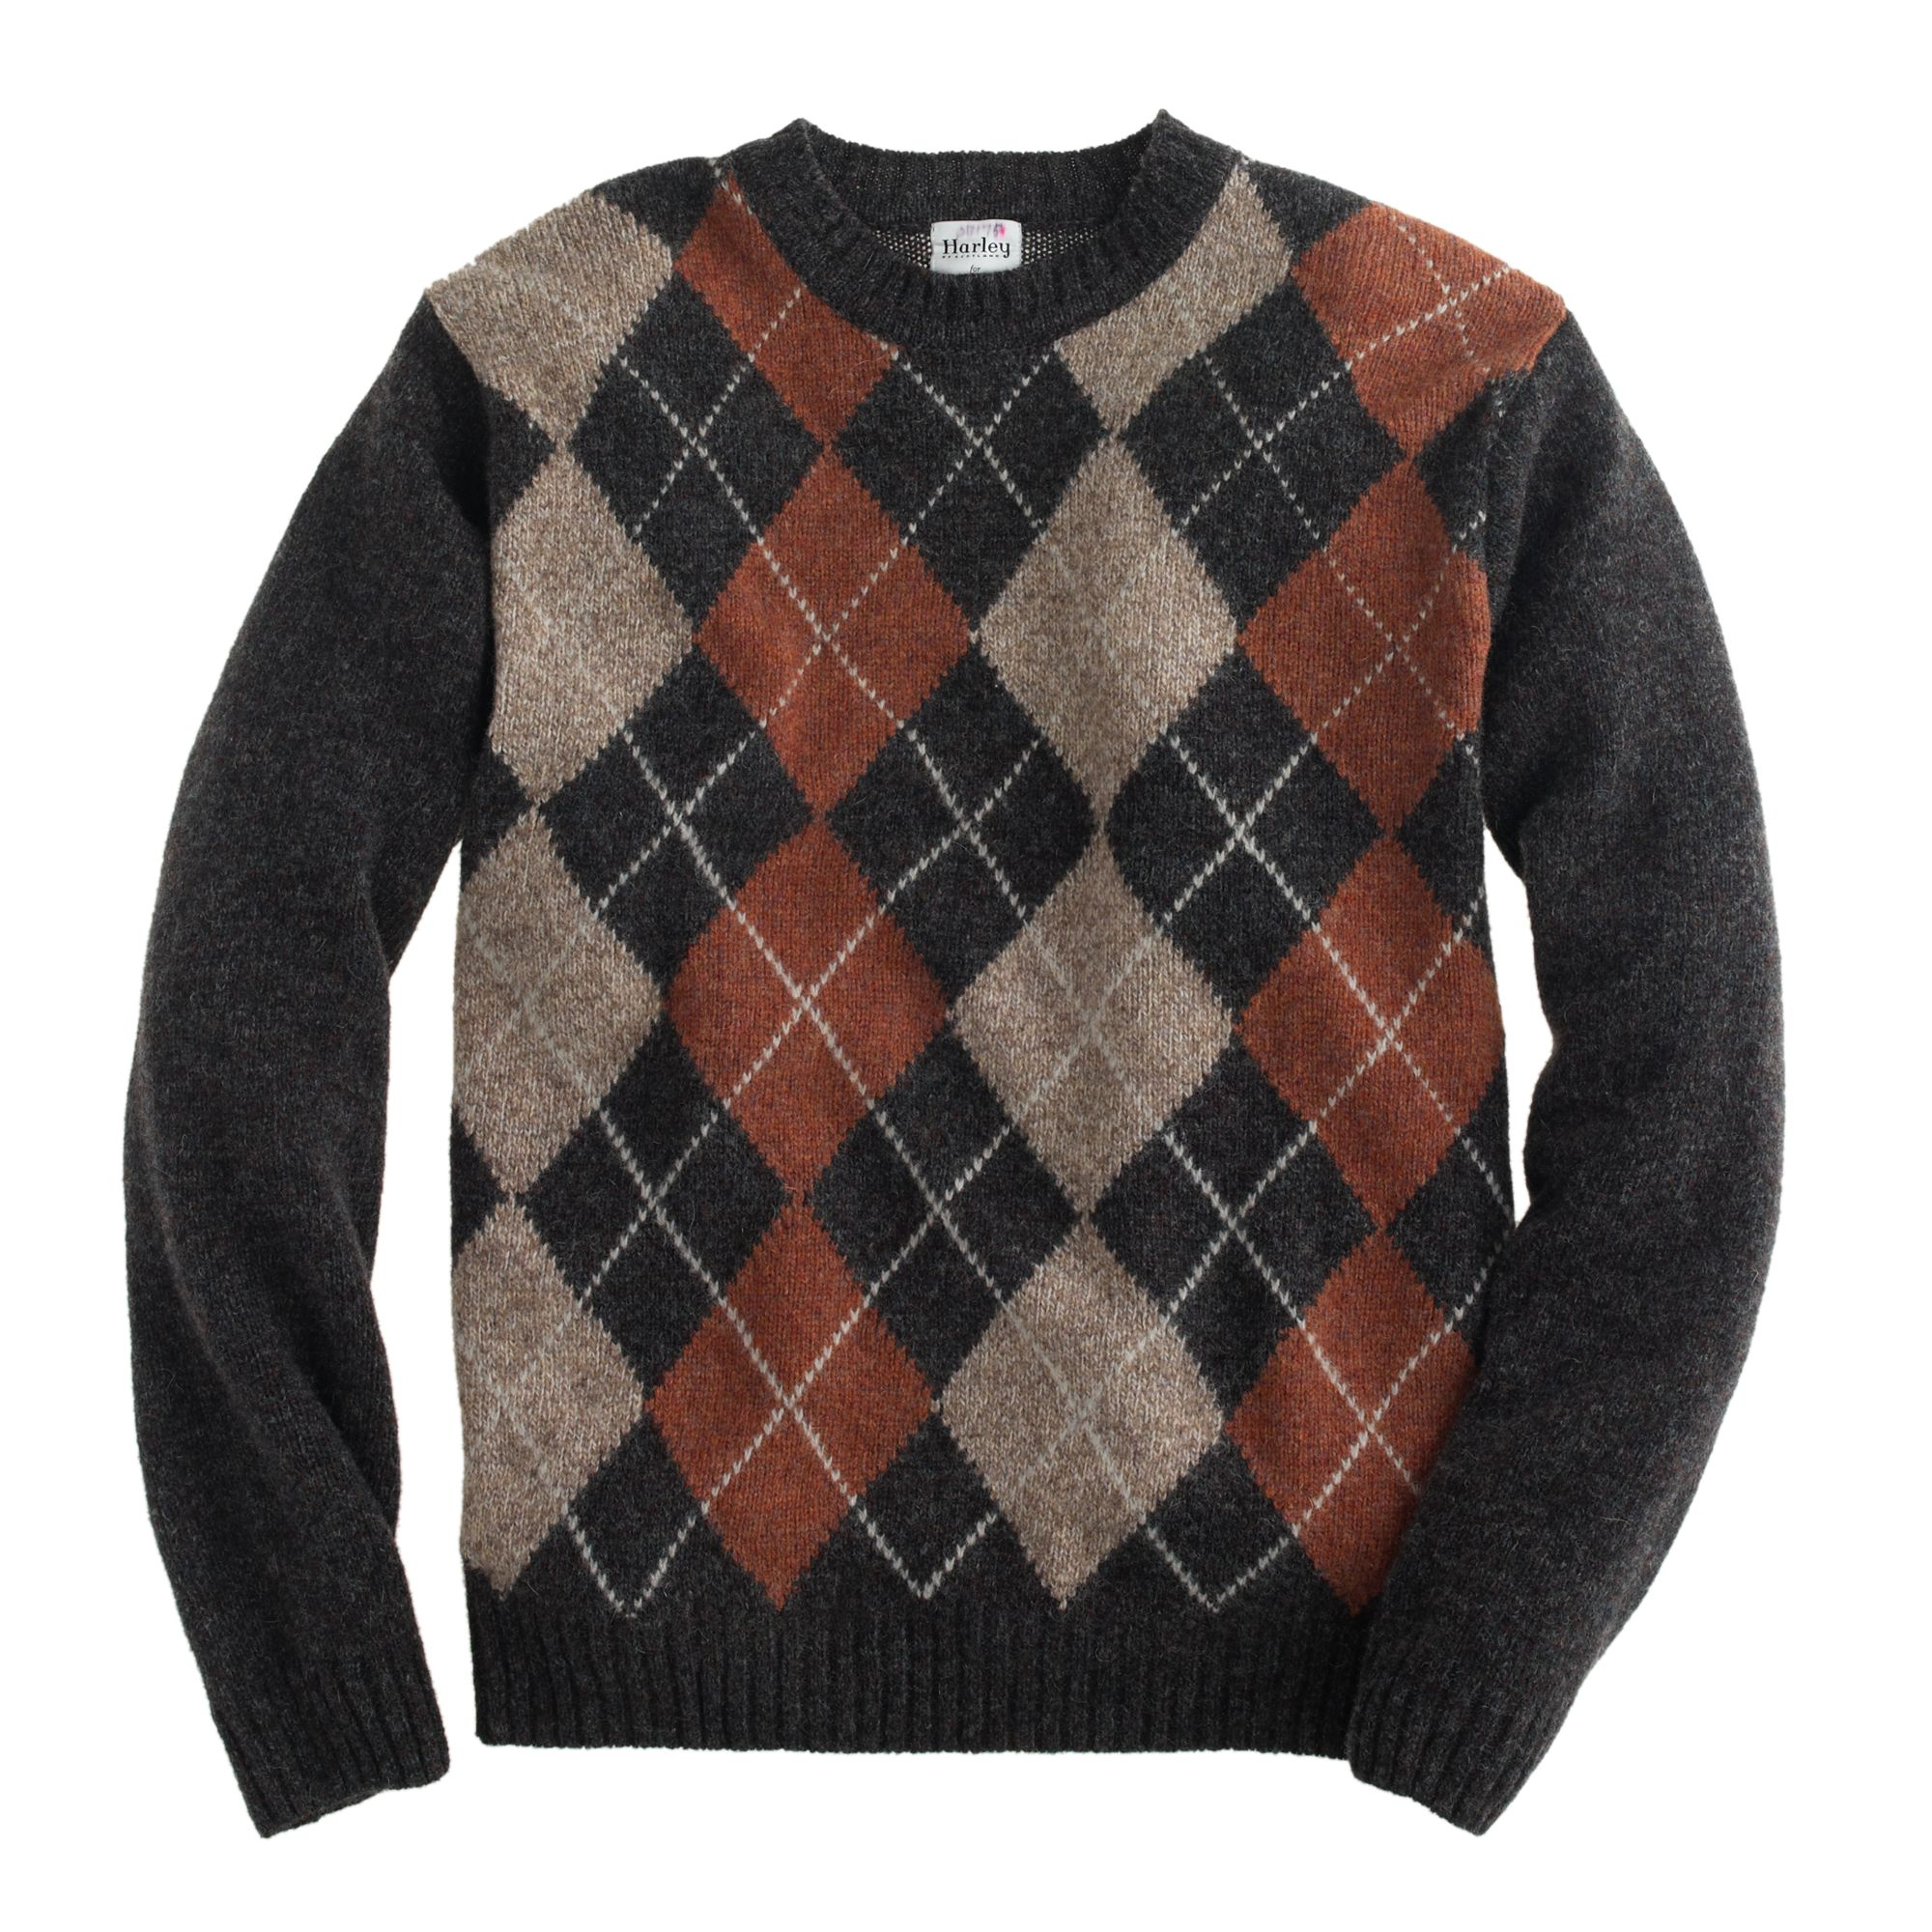 Find mens argyle sweater at ShopStyle. Shop the latest collection of mens argyle sweater from the most popular stores - all in one place.